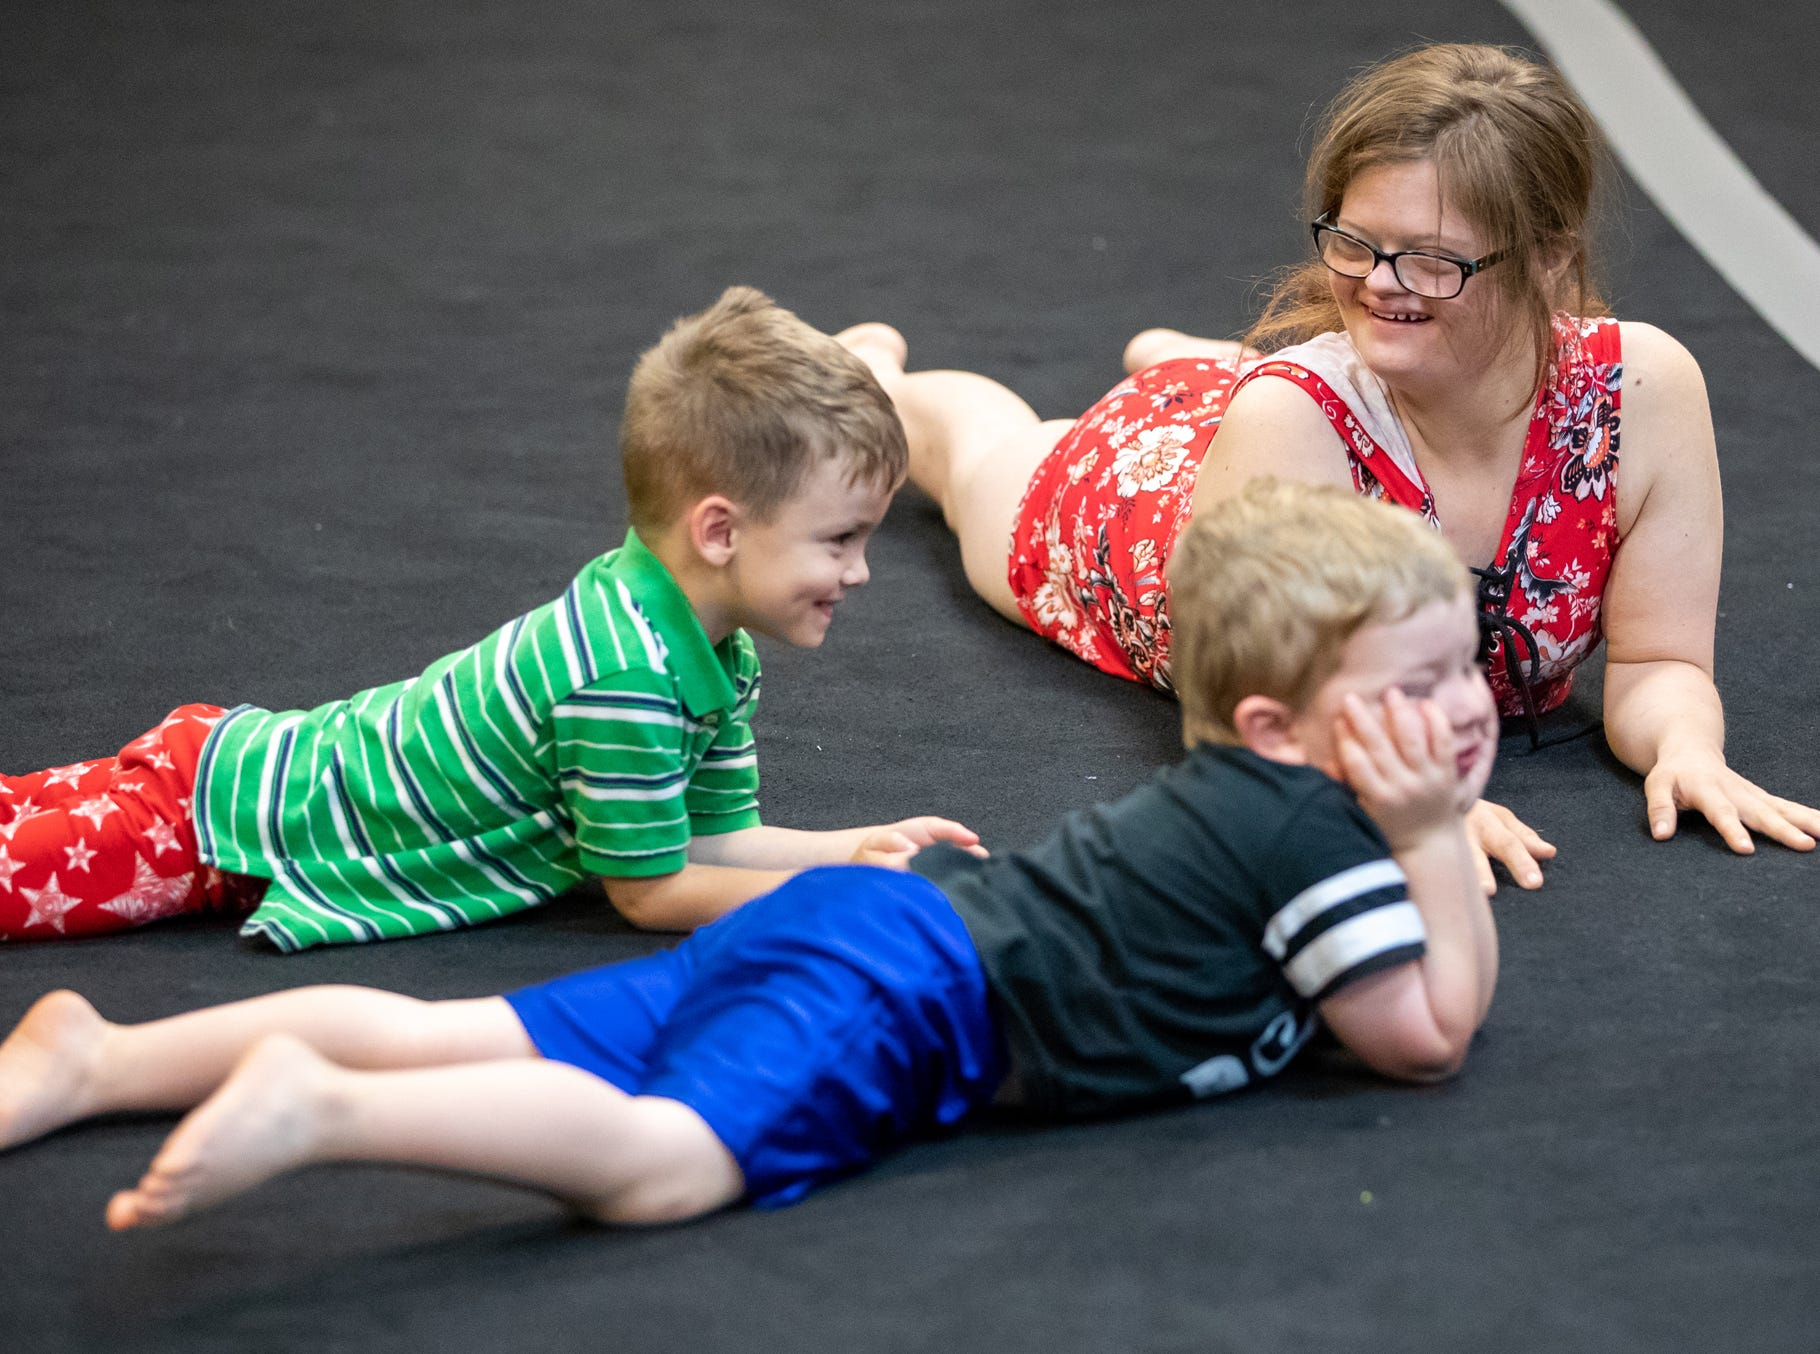 Mickey Deputy warms up for gymnastics class with her students, Max Black, 4, and Owen Riley, 3, at Style Dance Academy in Franklin, Ind., on Tuesday, Oct. 9, 2018.